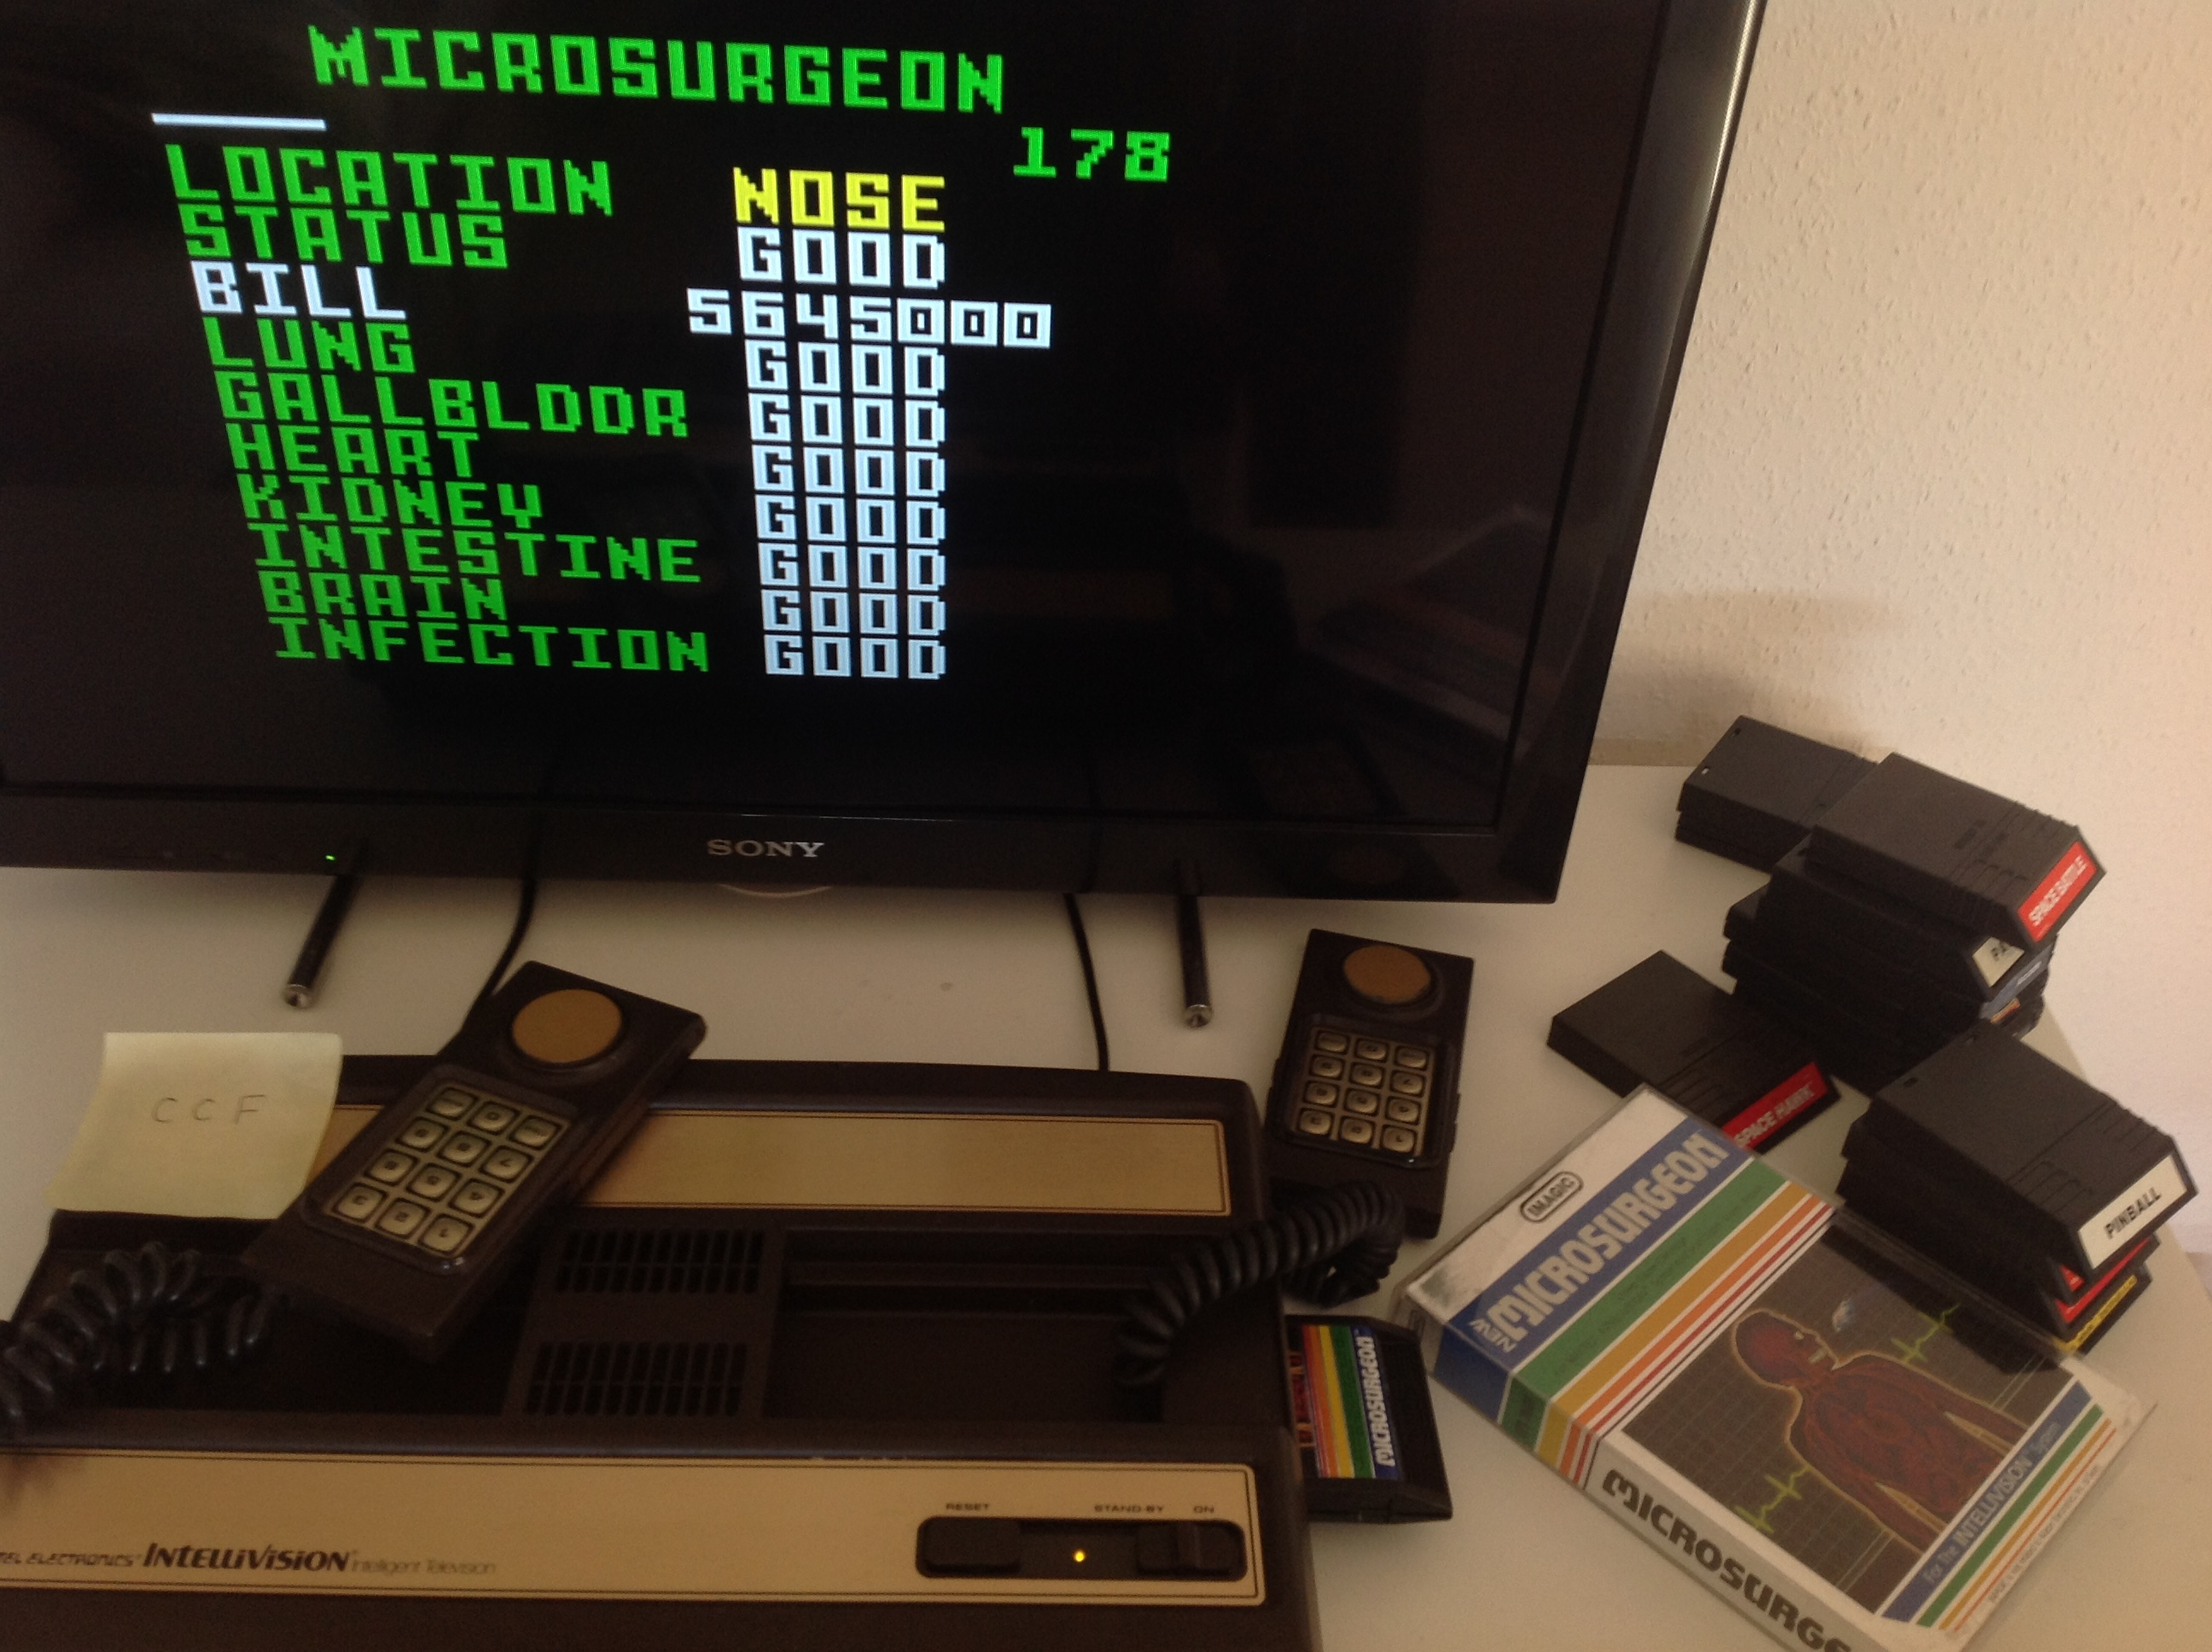 CoCoForest: Microsurgeon (Intellivision) 5,645,000 points on 2018-09-27 11:24:23